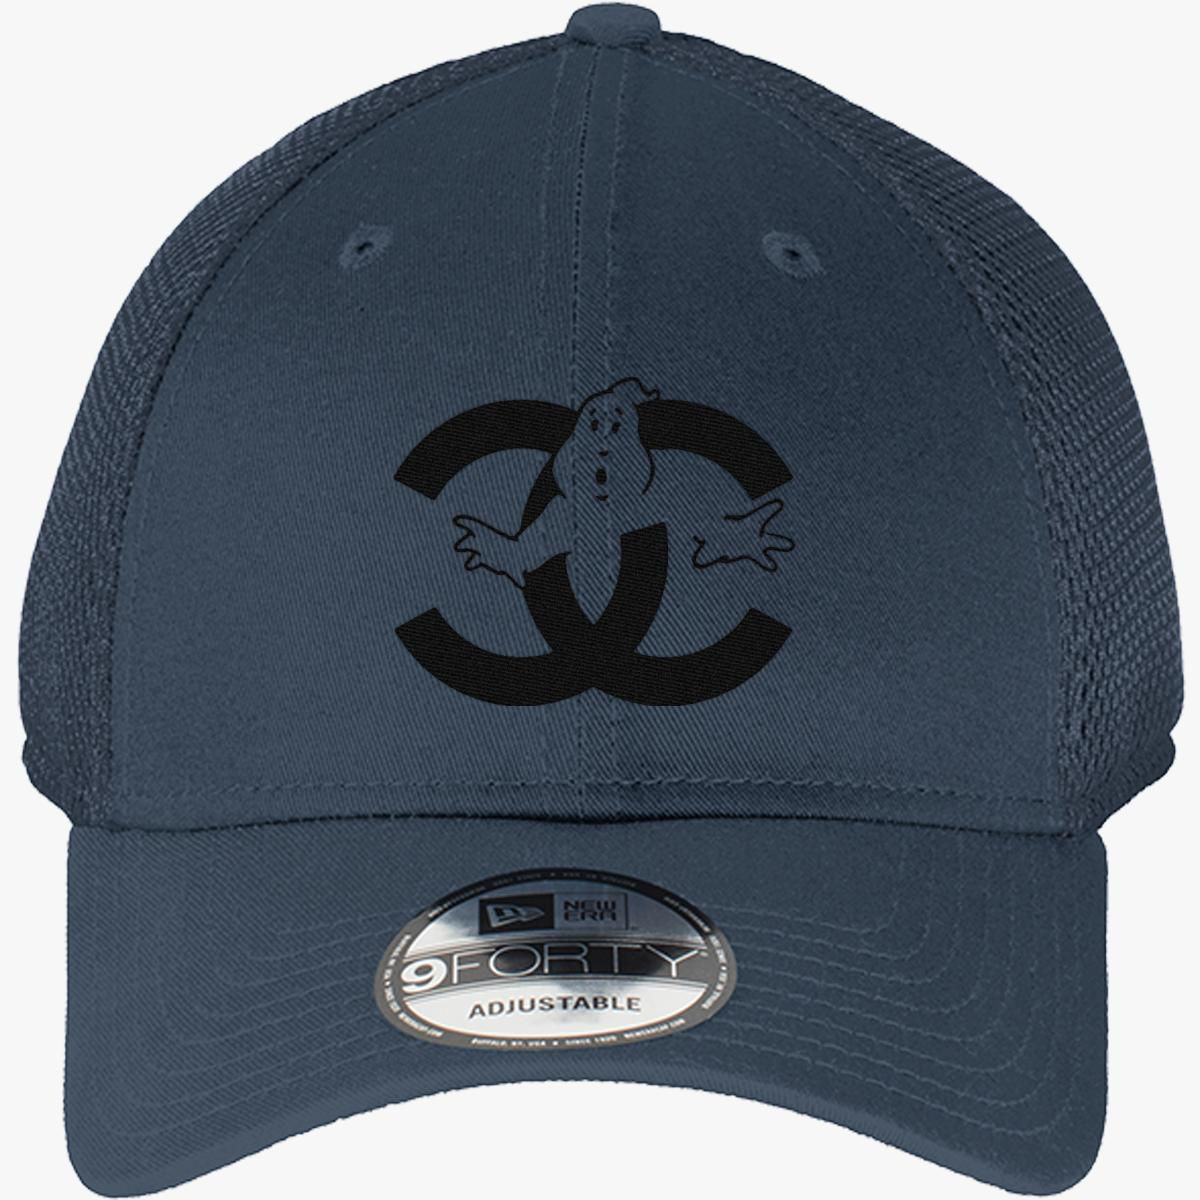 08966e11e75 chanel cc parody logo ghost New Era Baseball Mesh Cap - Embroidery